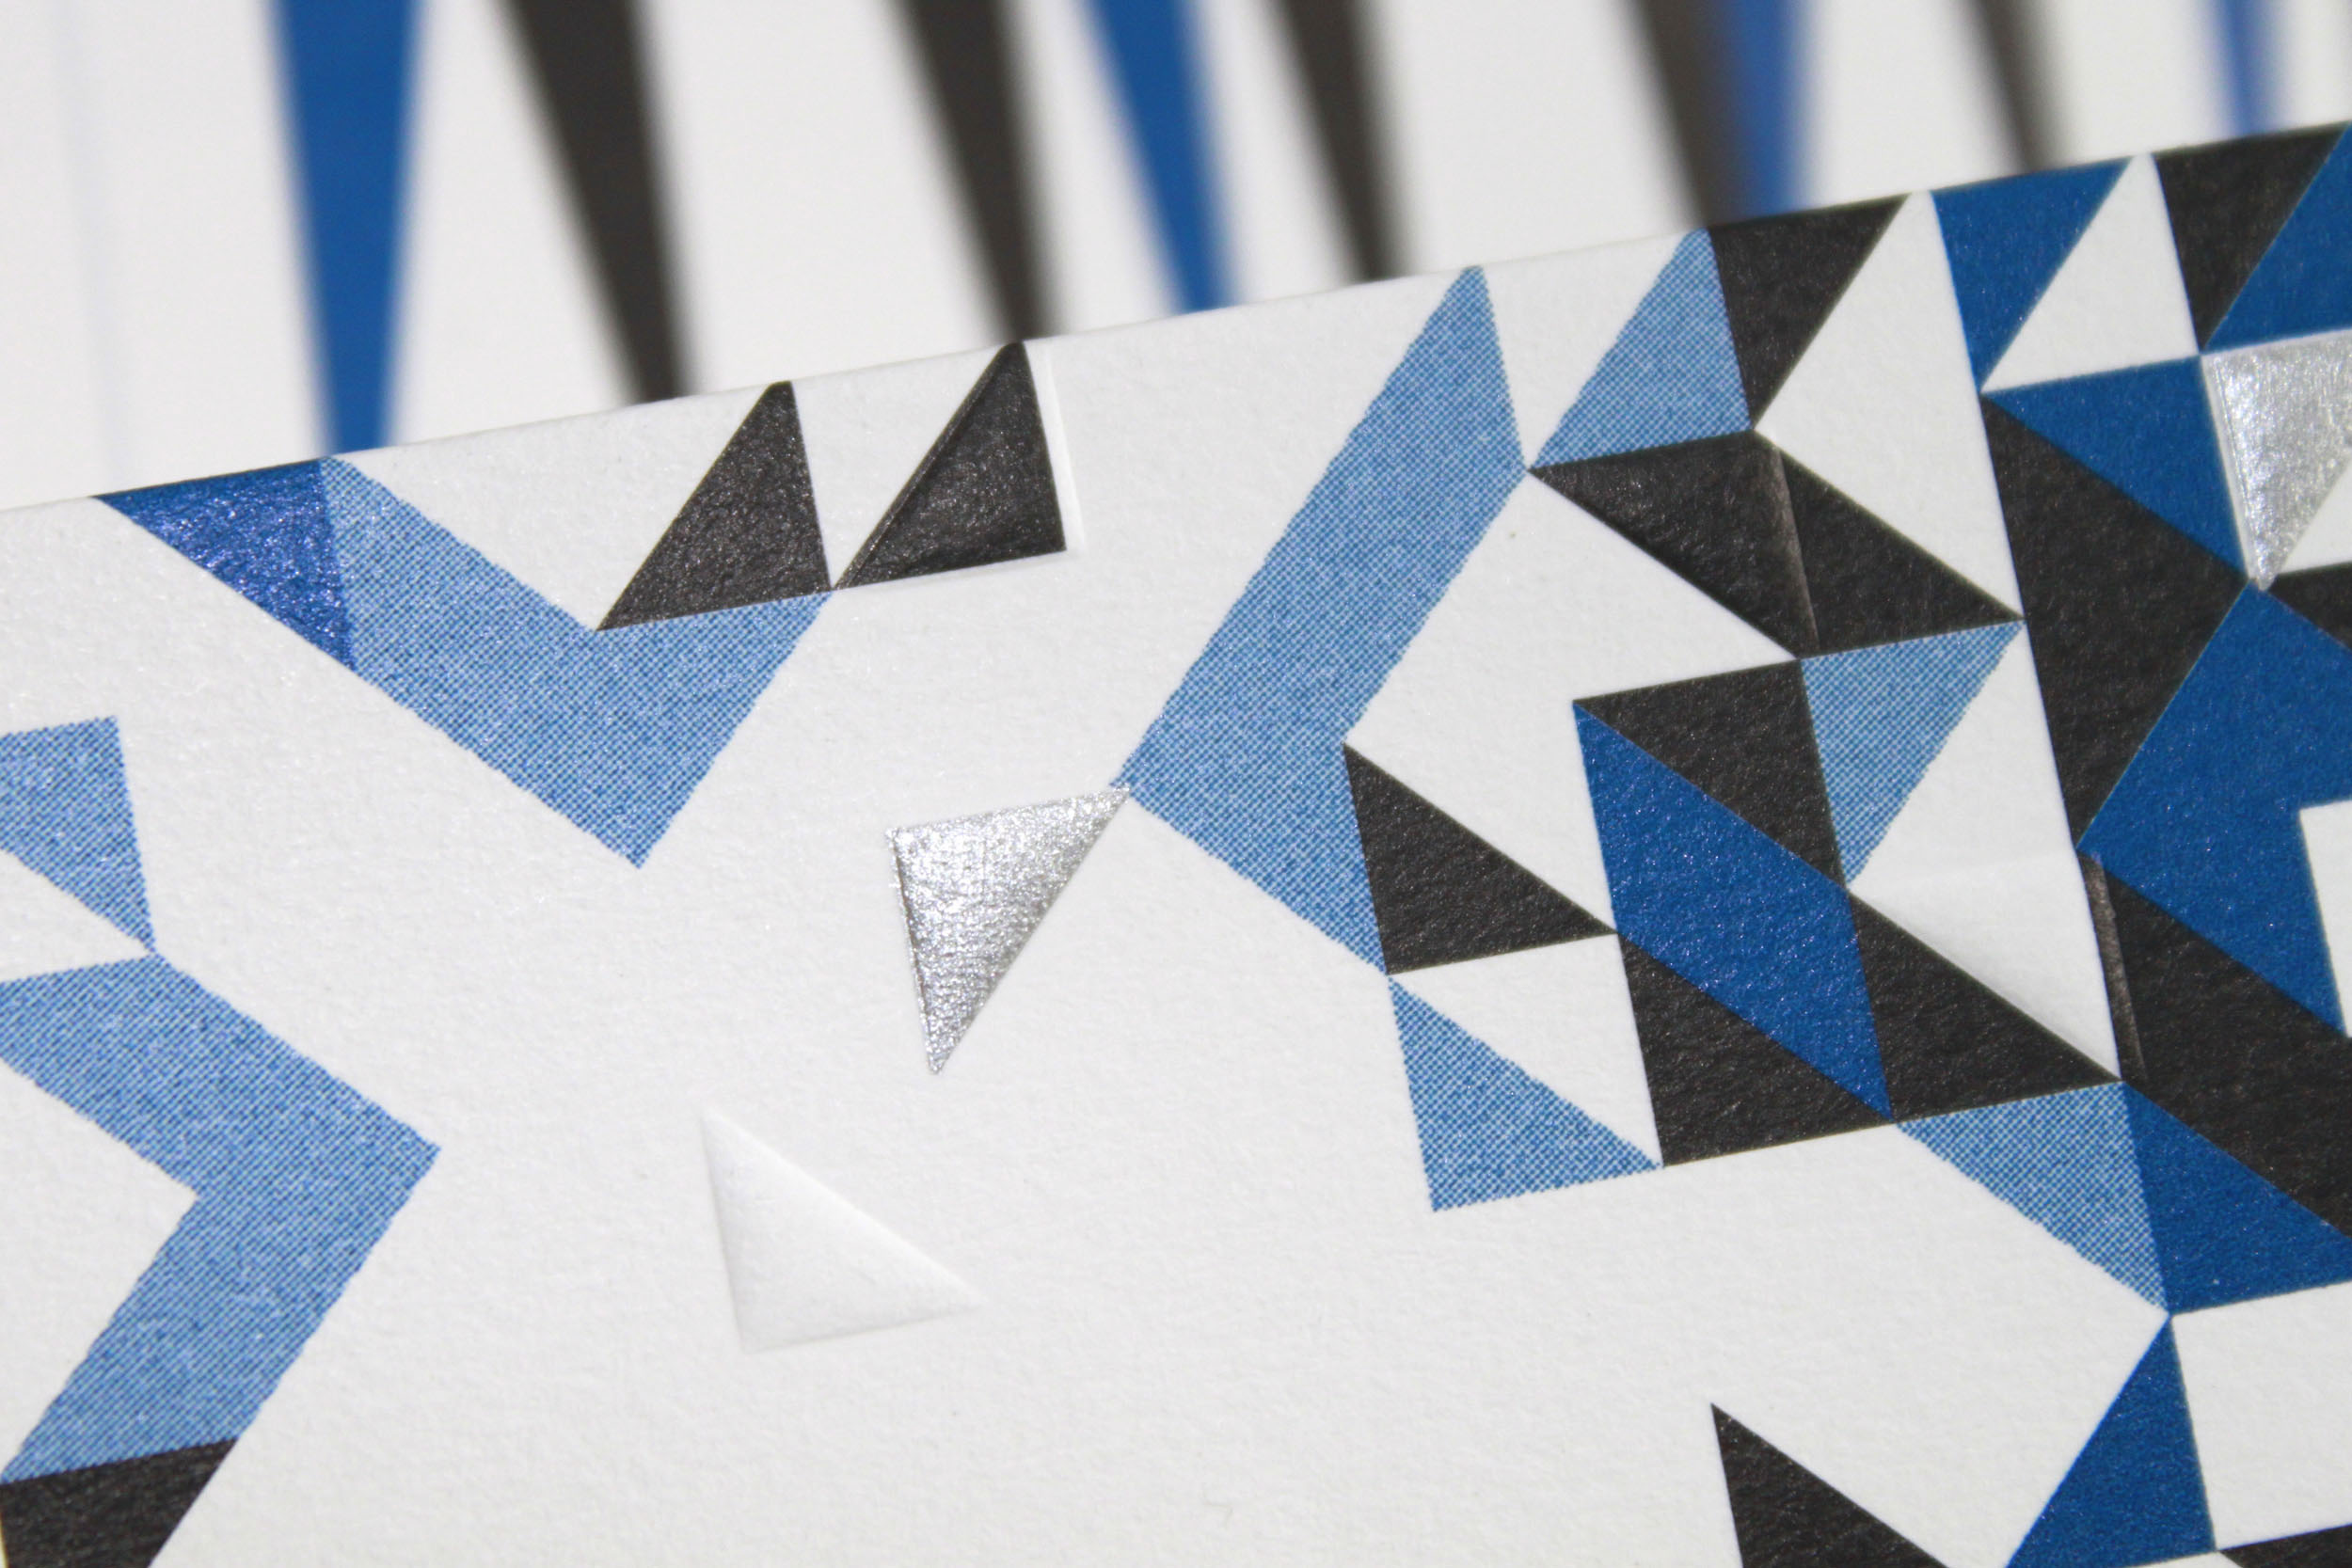 A detail of a Paper Plane showing embossed letter press design of triangles